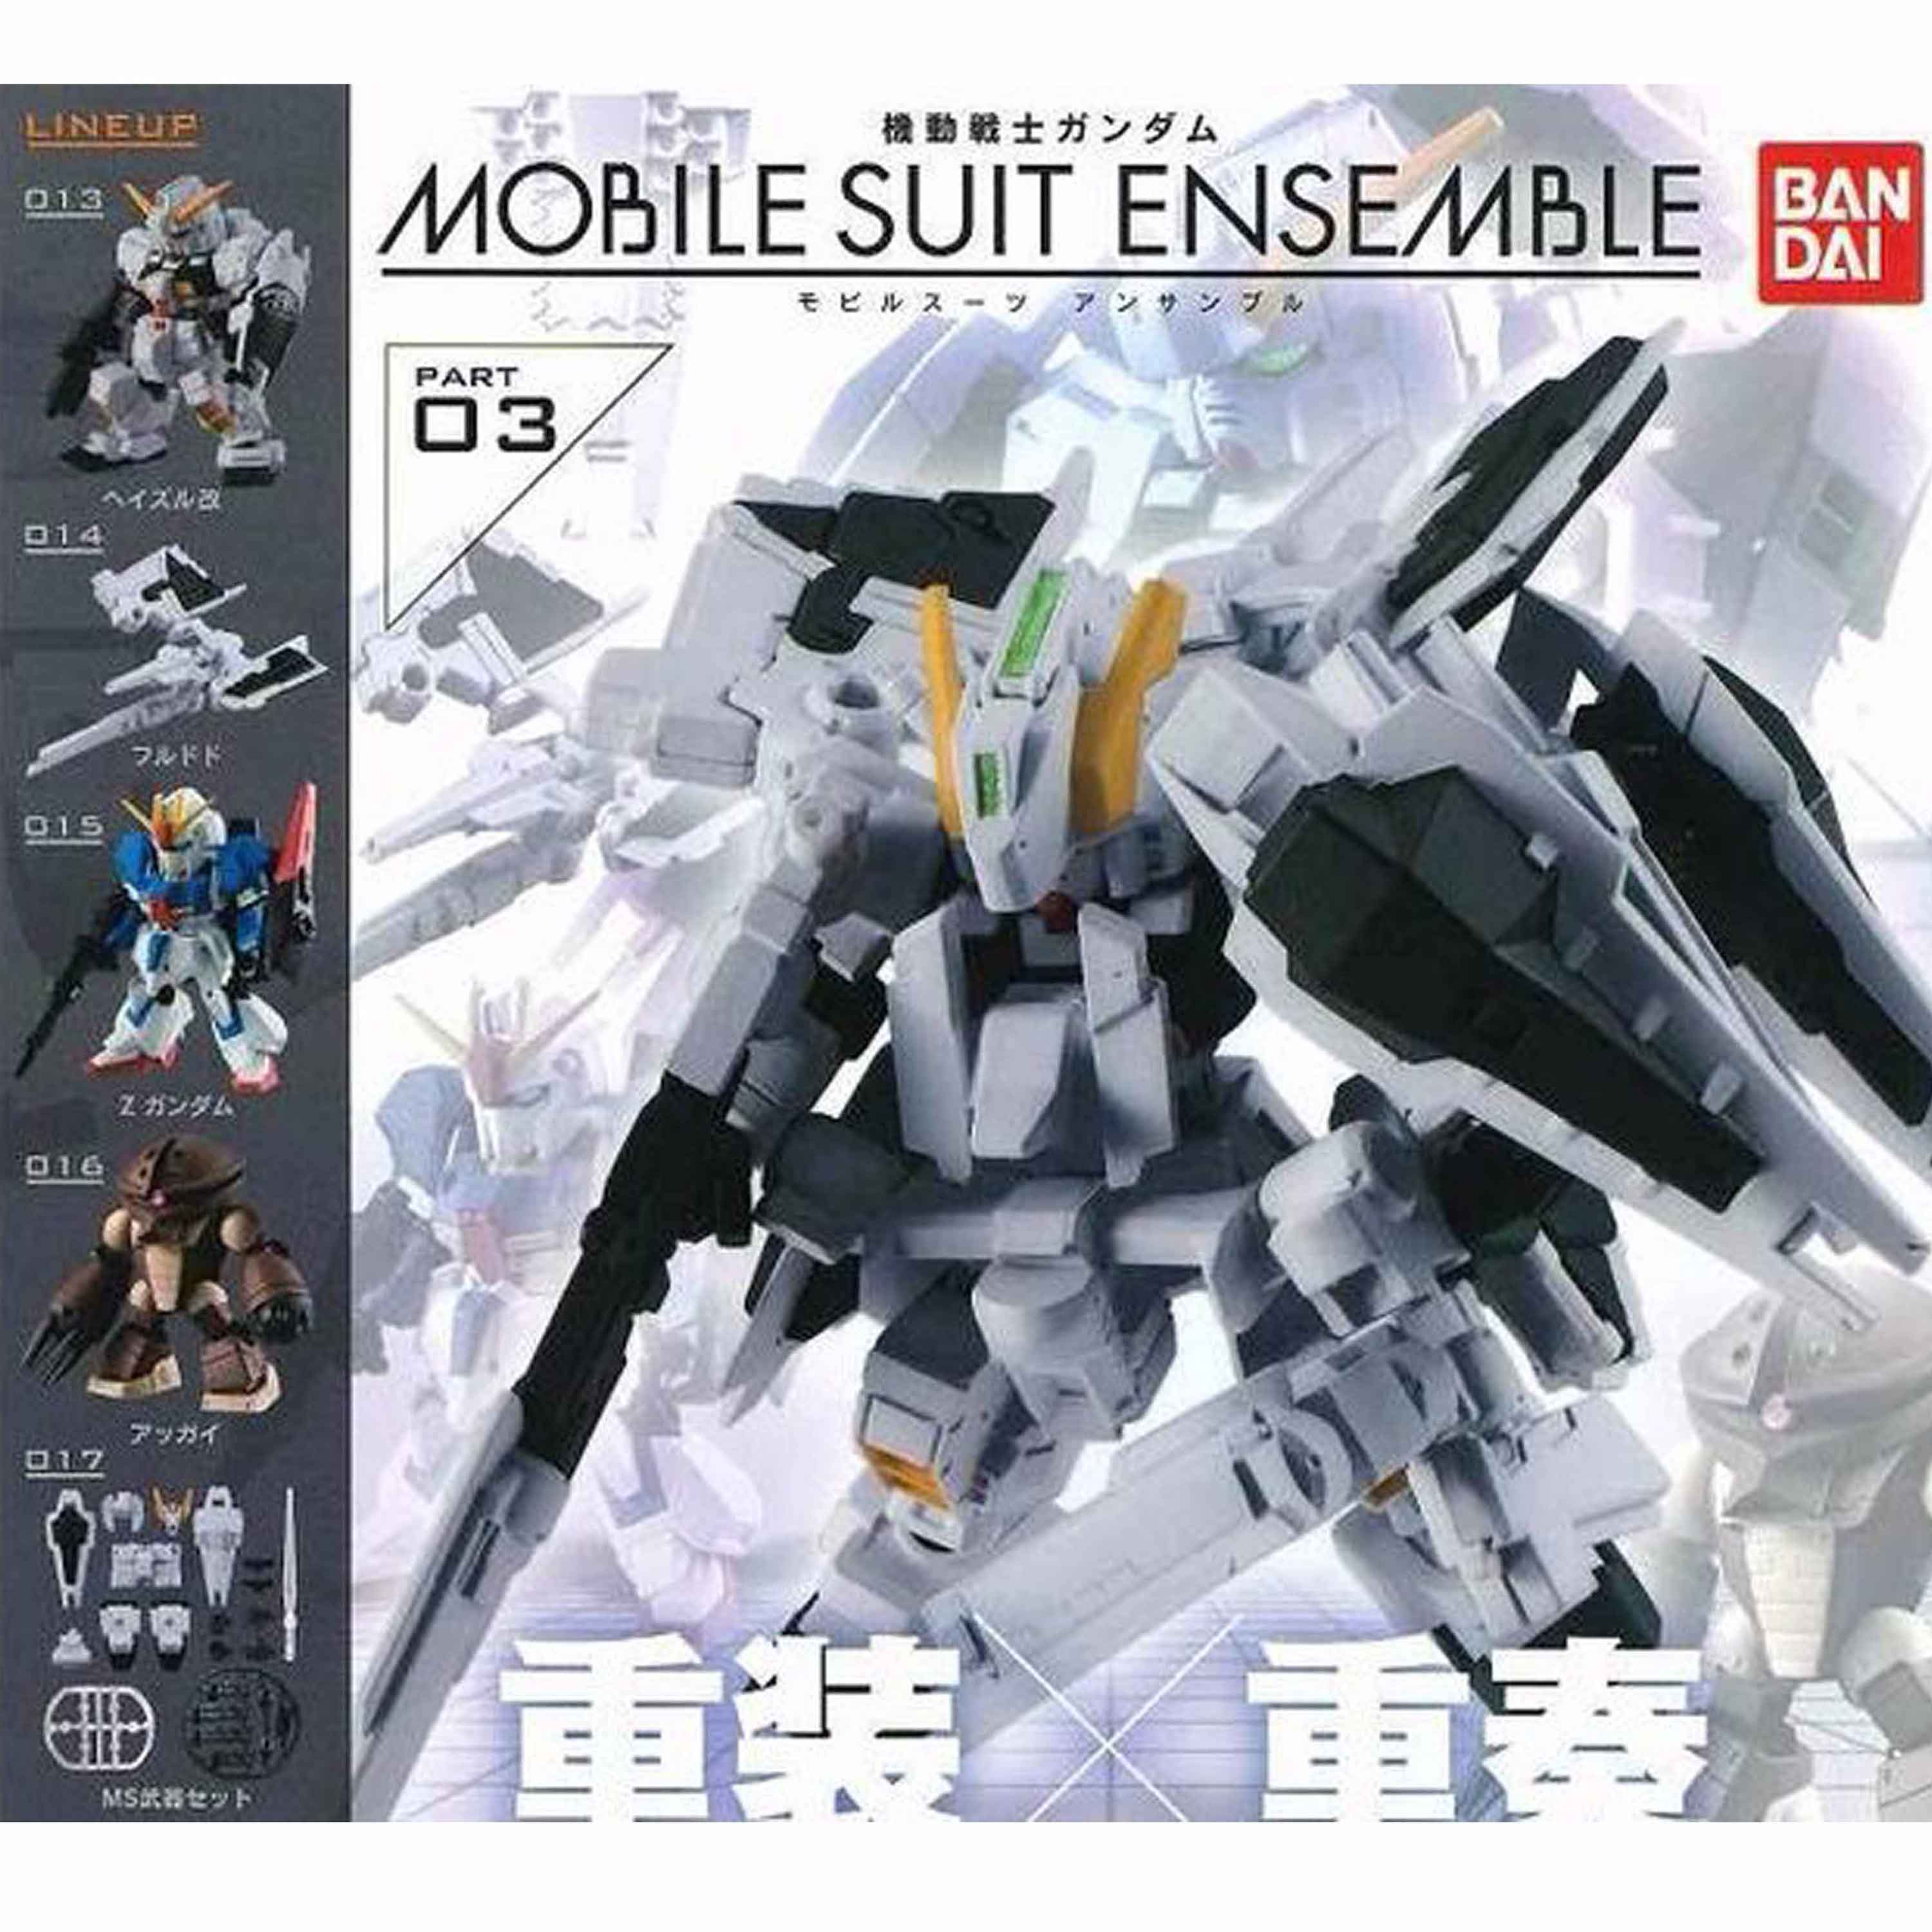 Mobile Suit Gundam MOBILE SUIT ENSEMBLE 03 Acgguy